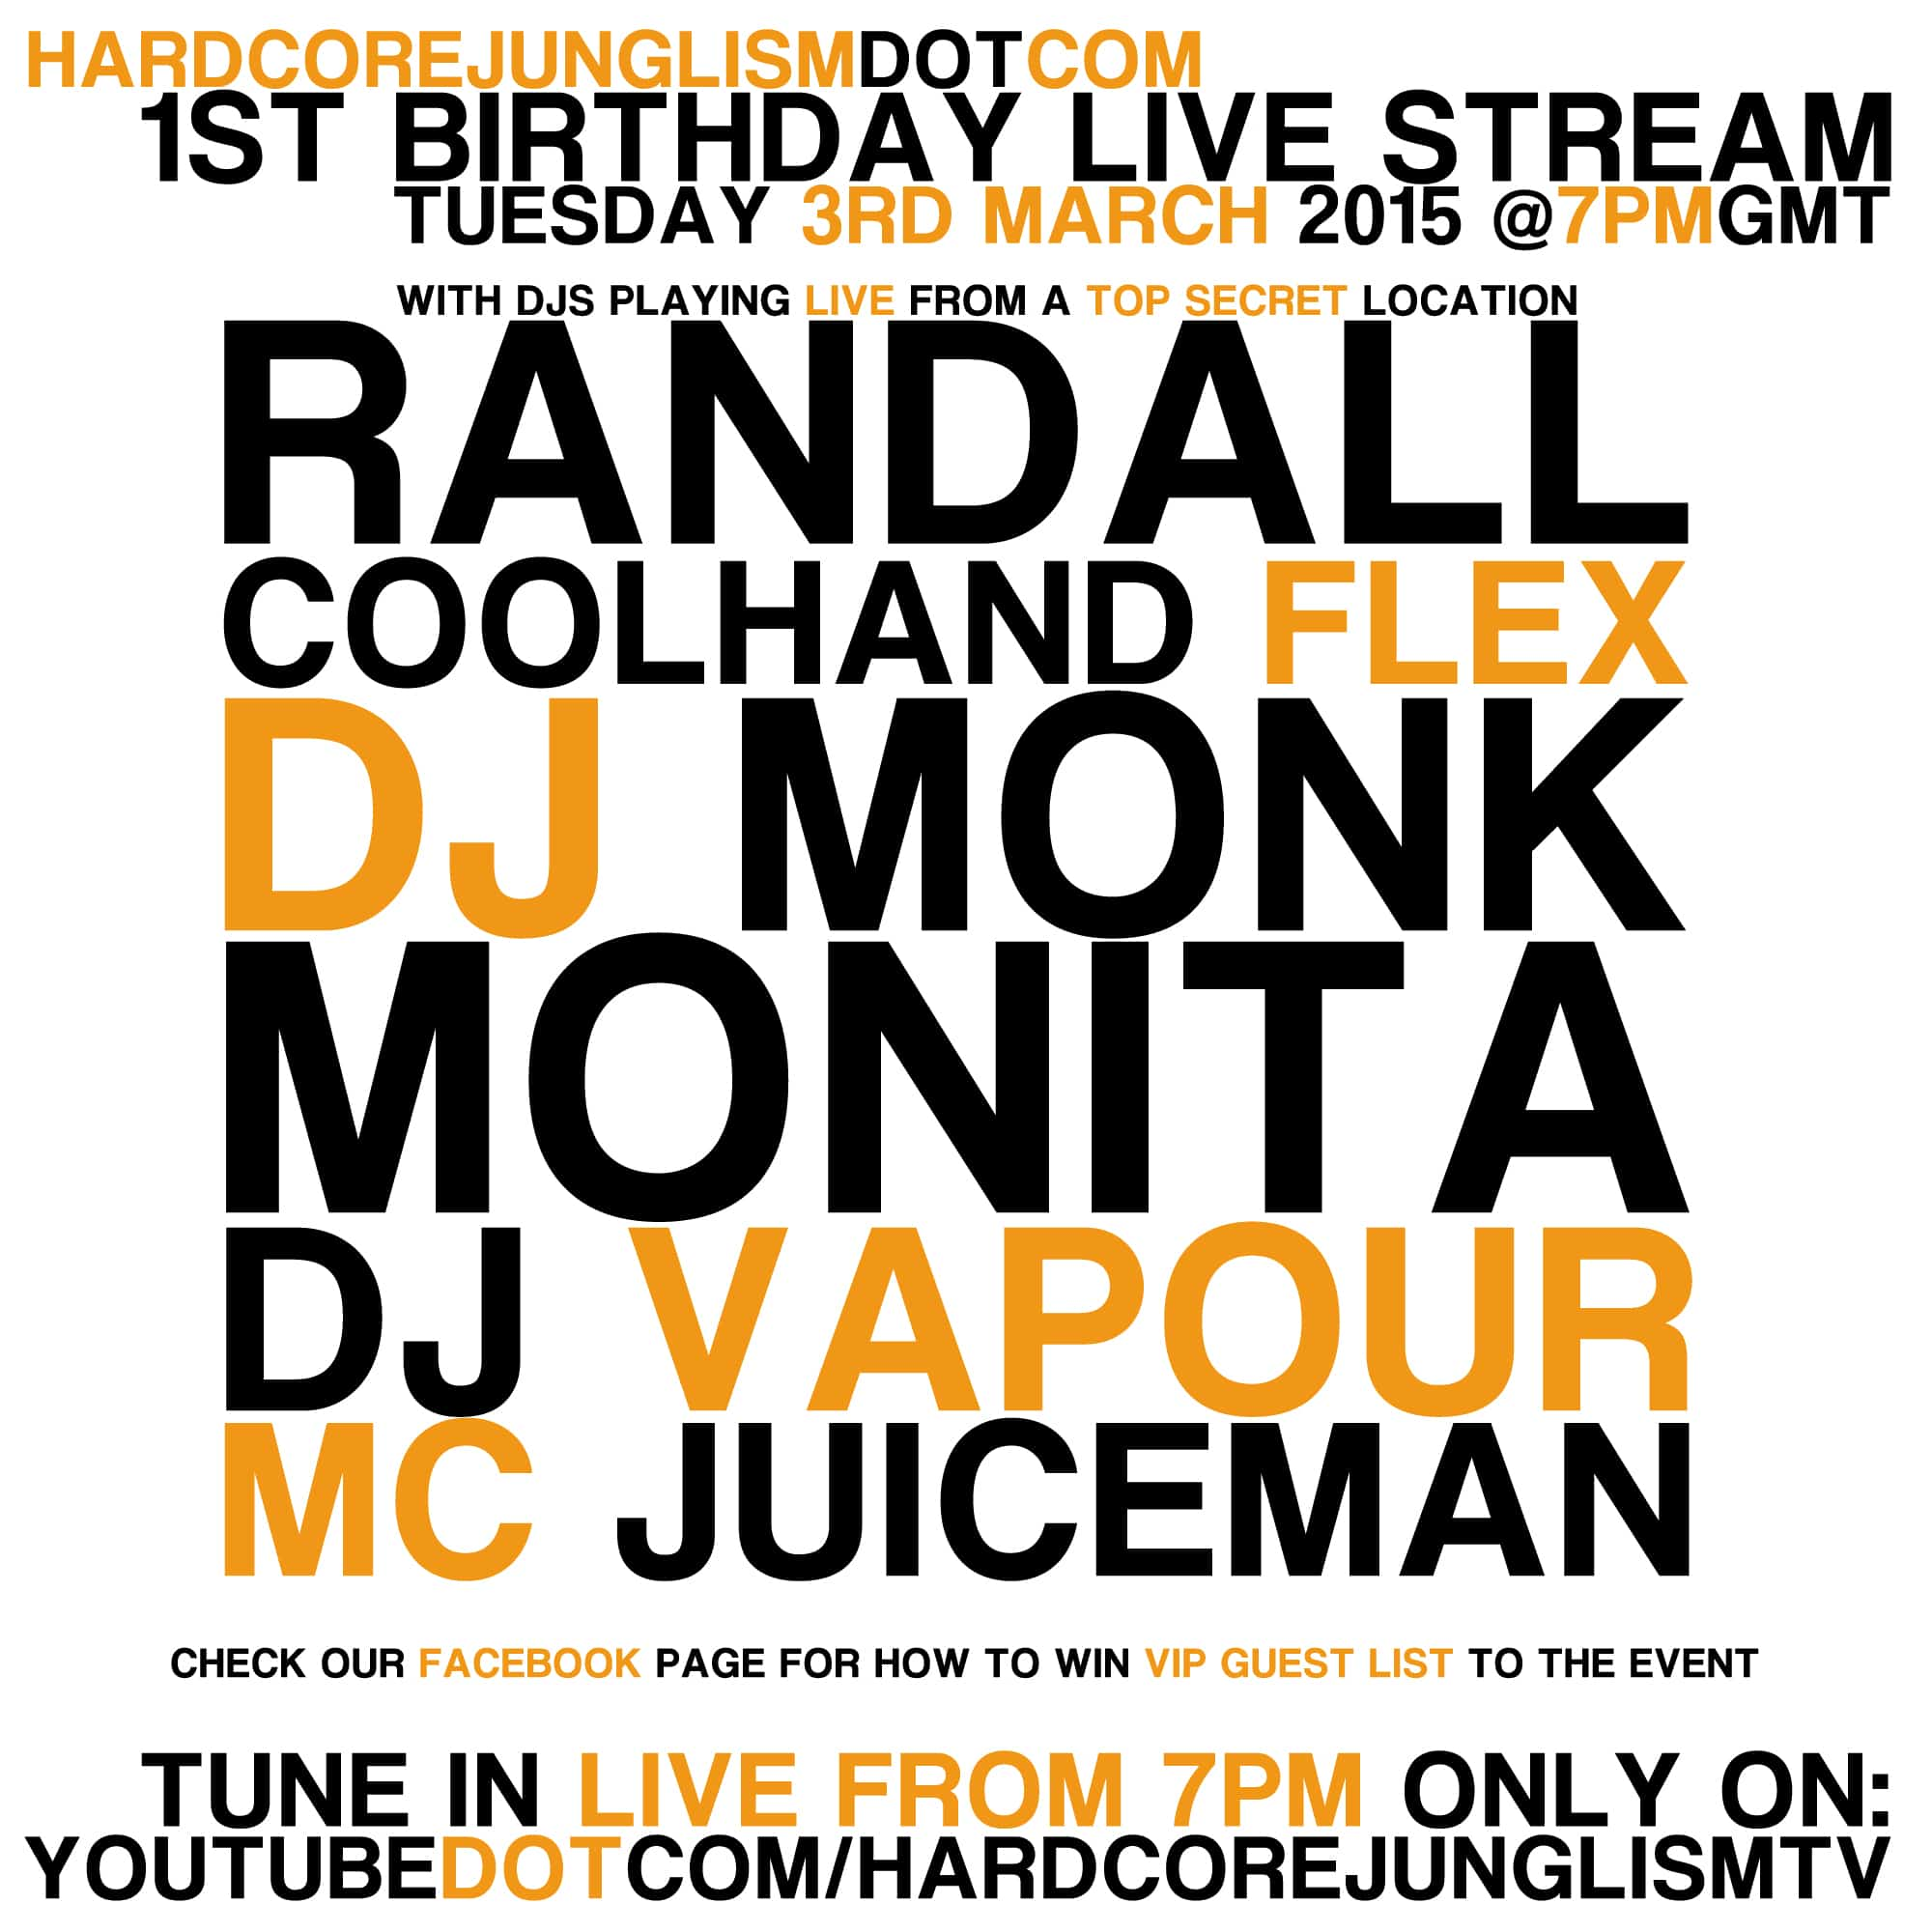 1st Birthday Sqaure flyer - 1ST Birthday Live Stream - Tuesday 3rd March